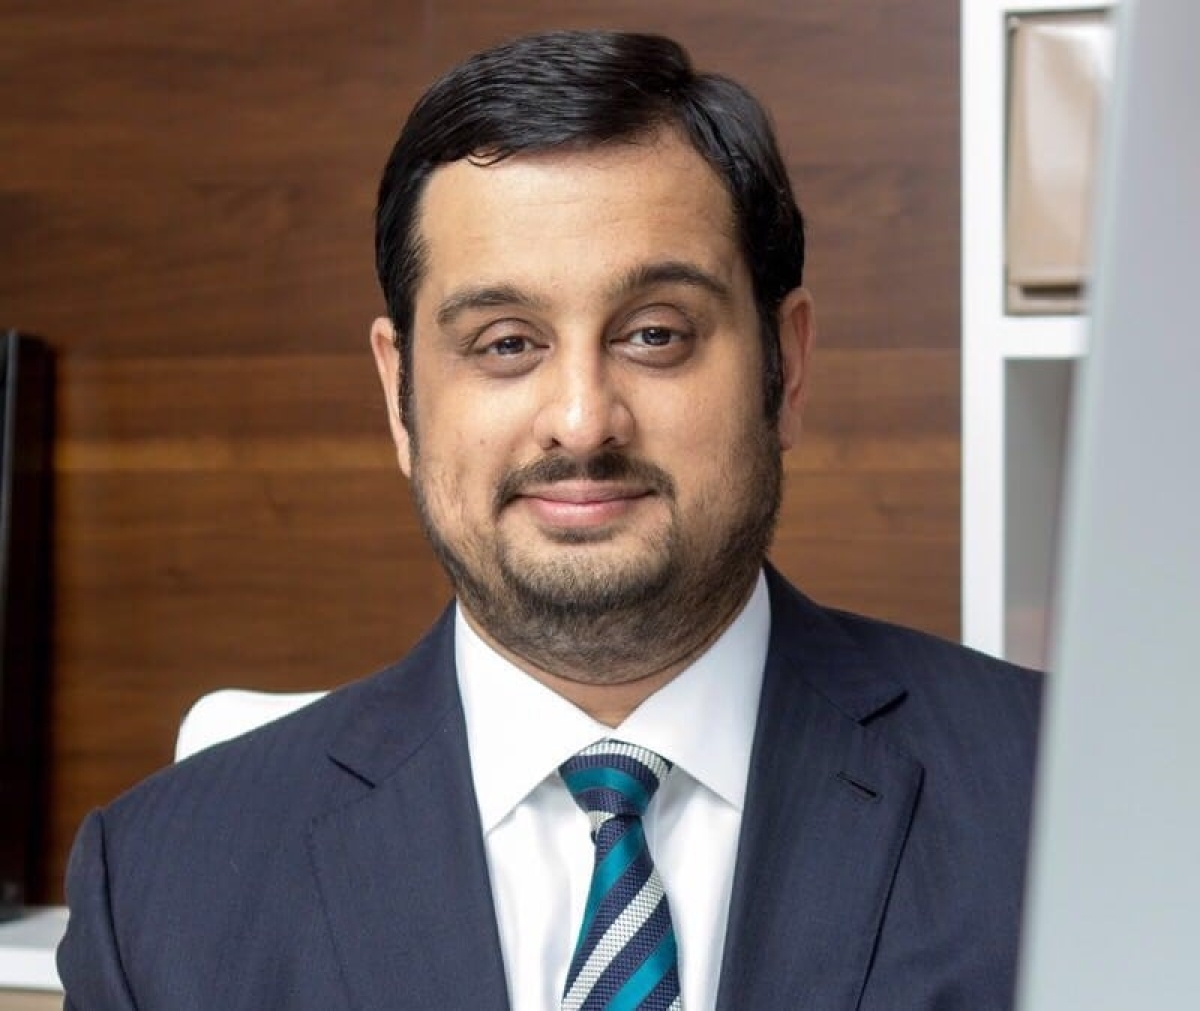 Ashwath Rau on being one of ET's Hottest Business Leaders under 40